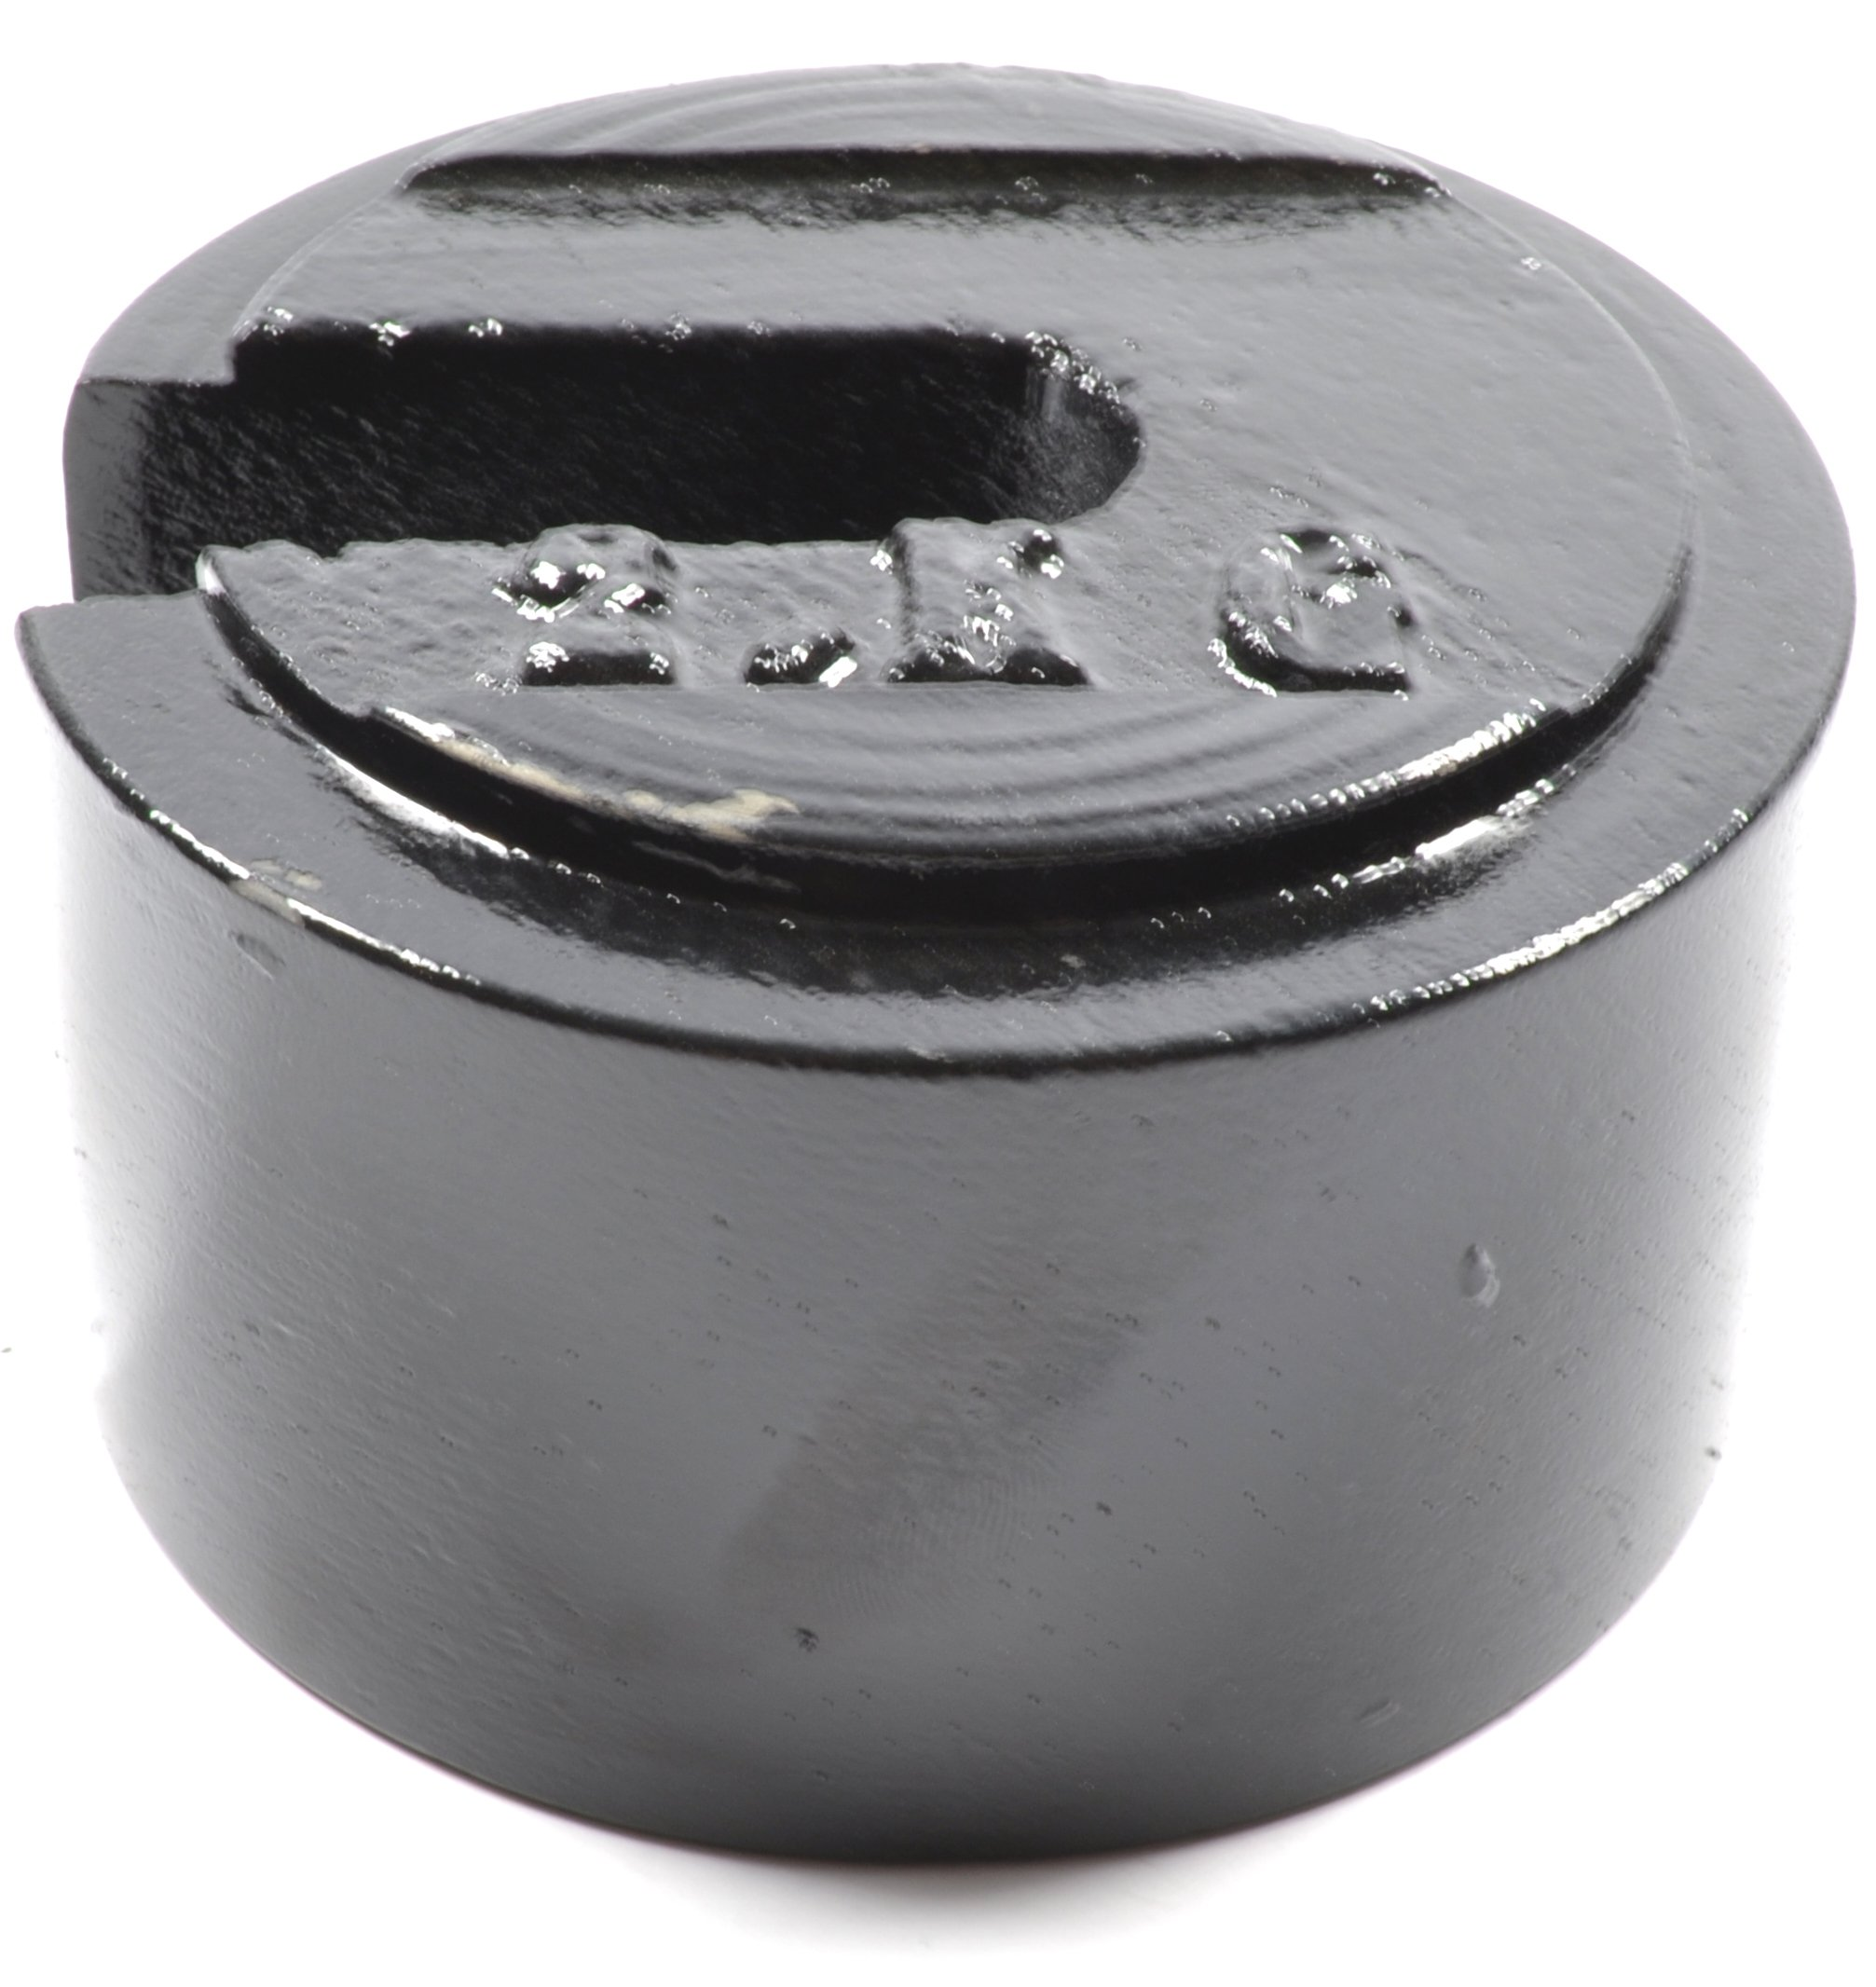 2 kg (Kilogram) Cast Iron Slotted Weight - Eisco Labs by EISCO